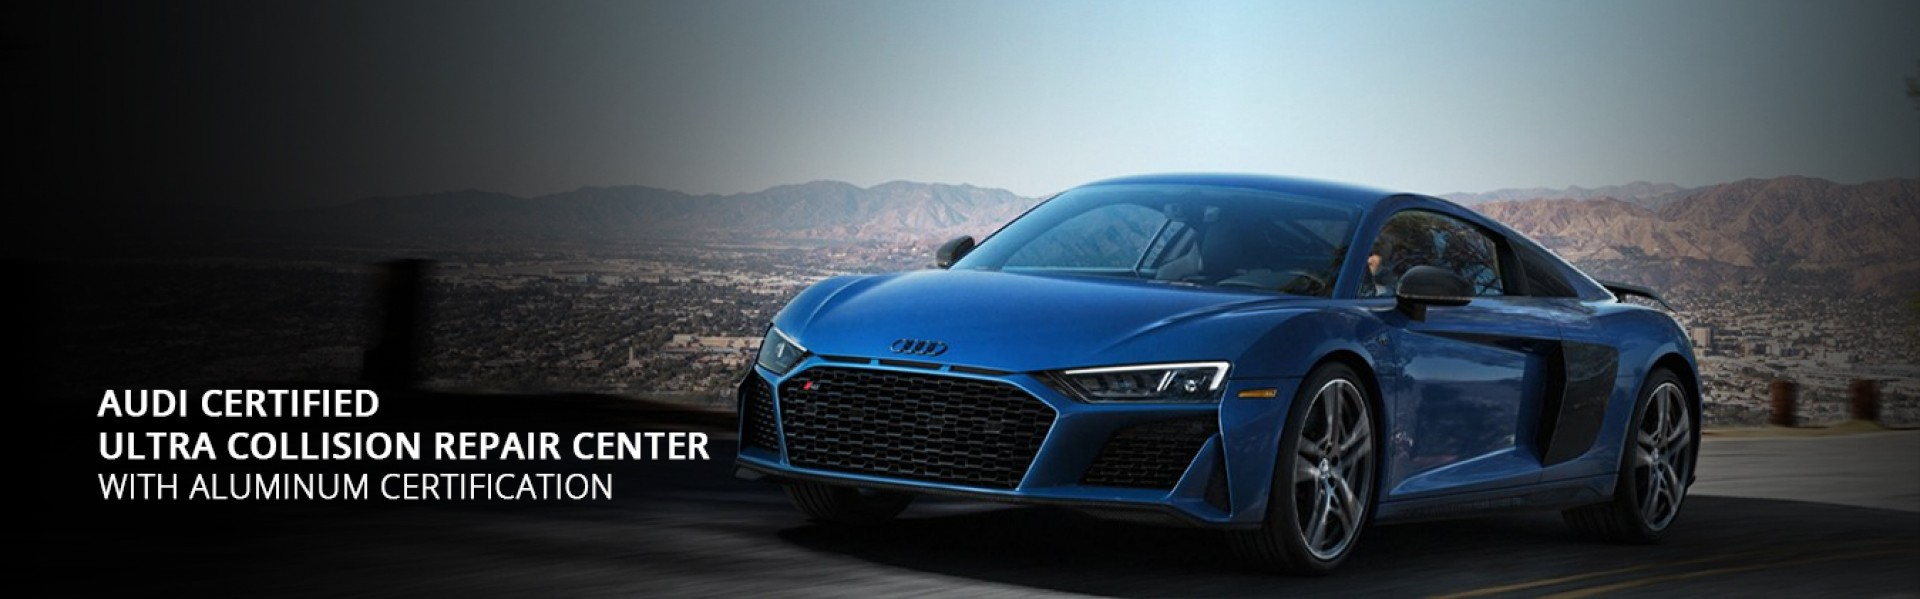 Audi Certified - Ultra Collision Repair Center with Aluminum Certification